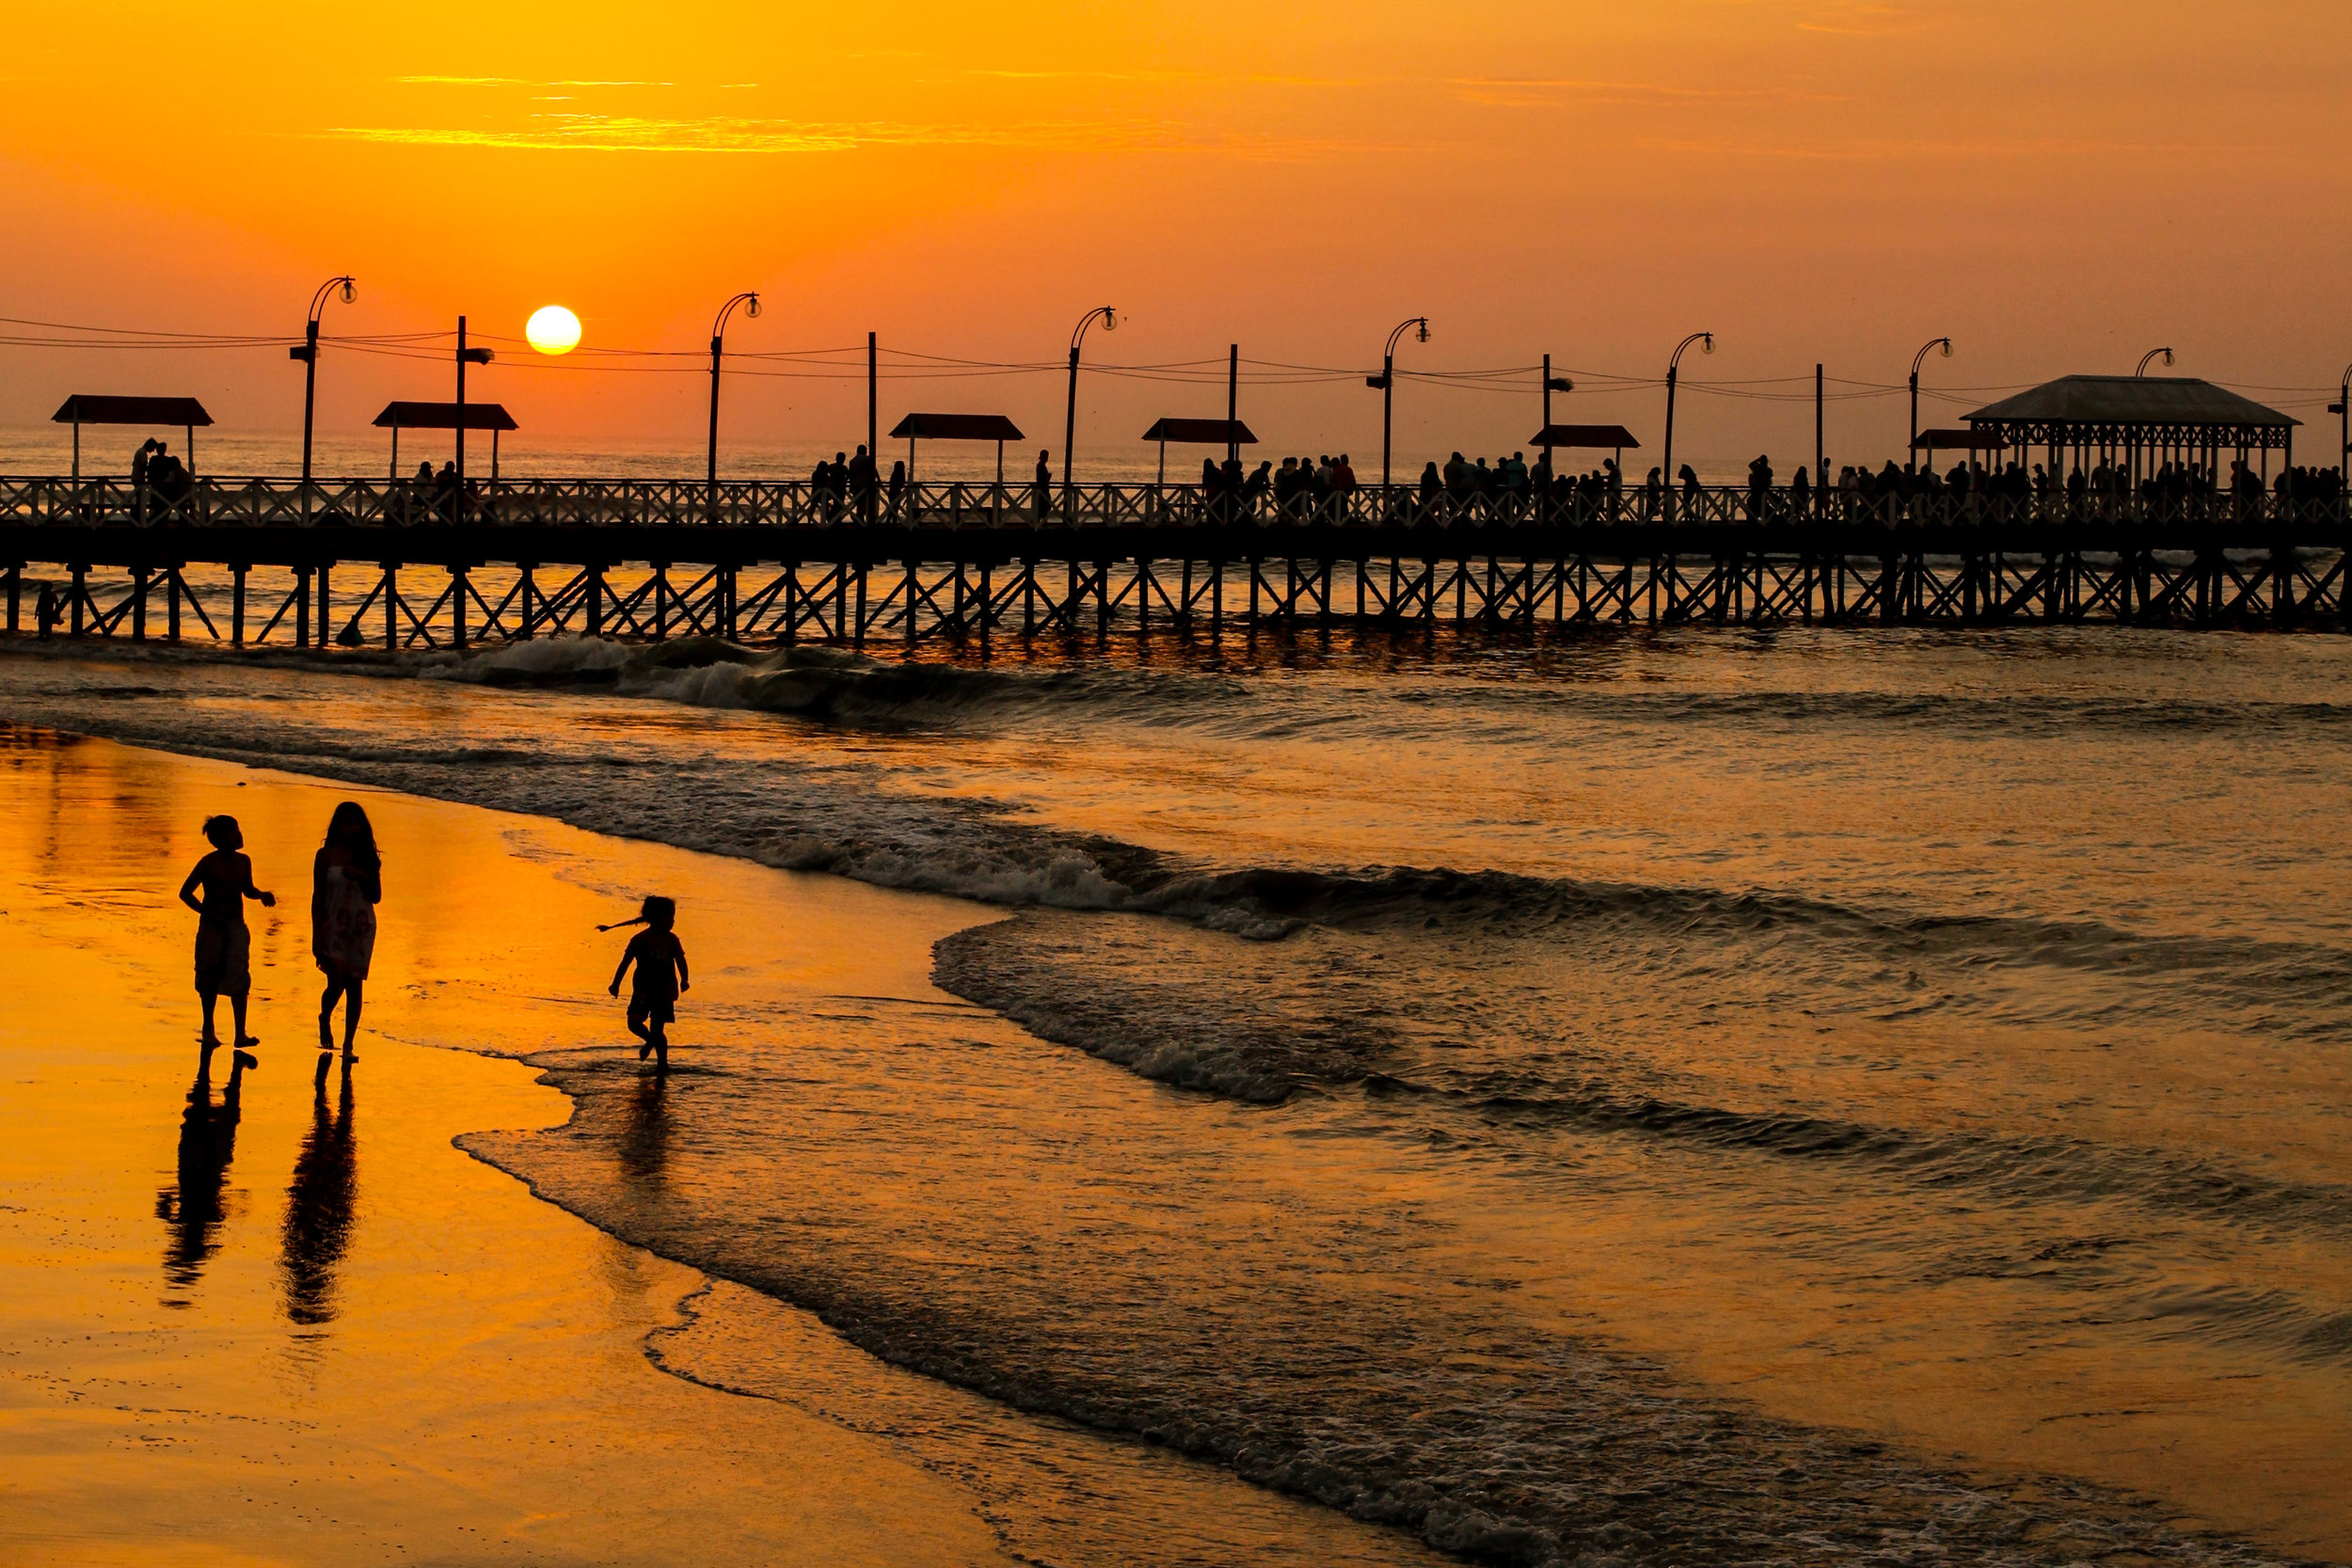 Golden sunset over the pier in Huanchaco, Trujillo, Peru.